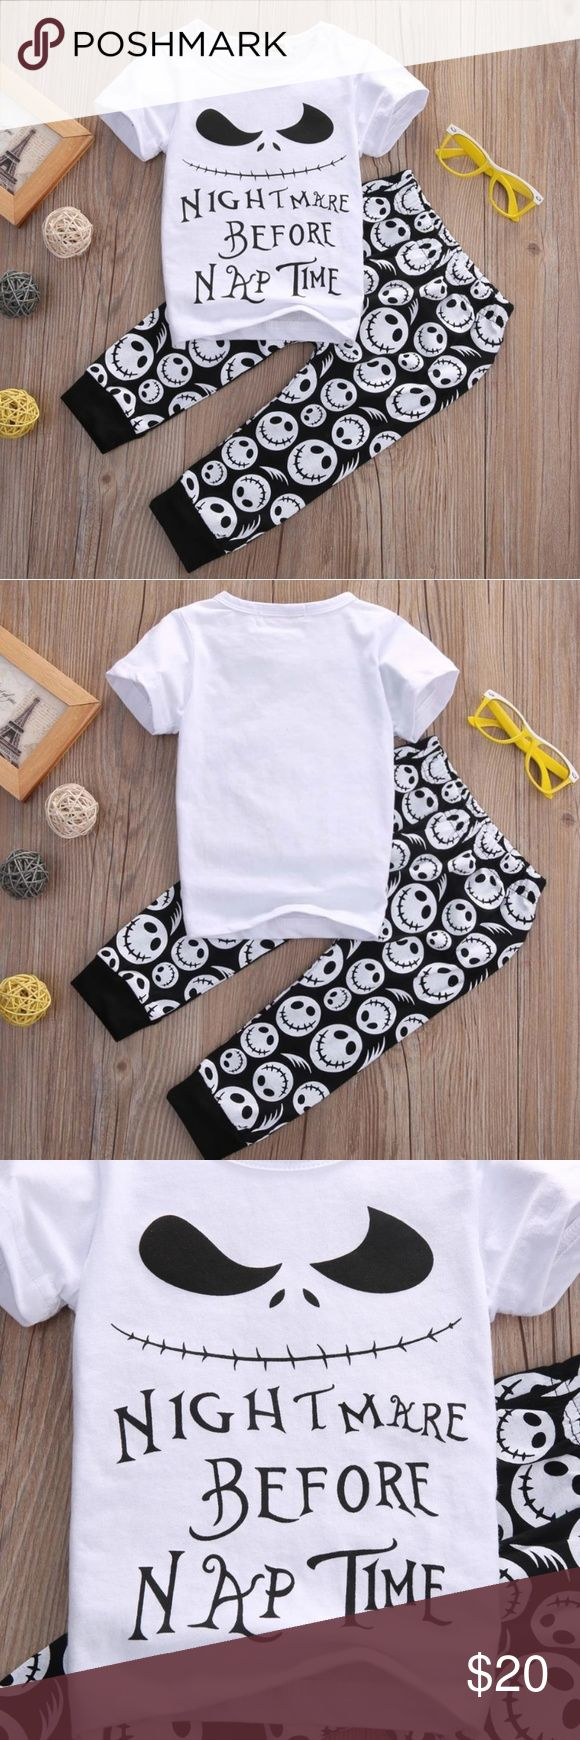 Adorable Nightmare b4 Christmas Baby Outfits Nightmare before Christmas Baby Outfits/Cotton Baby Boys Casual 2pcs baby clothing sets.   Baby Unisex Long Sleeve Romper Jumpsuit Pajamas.   Adorable Trendy and Fashionable Warm Outfits  Materials: Cotton Matching Sets #babyboylongsleeve